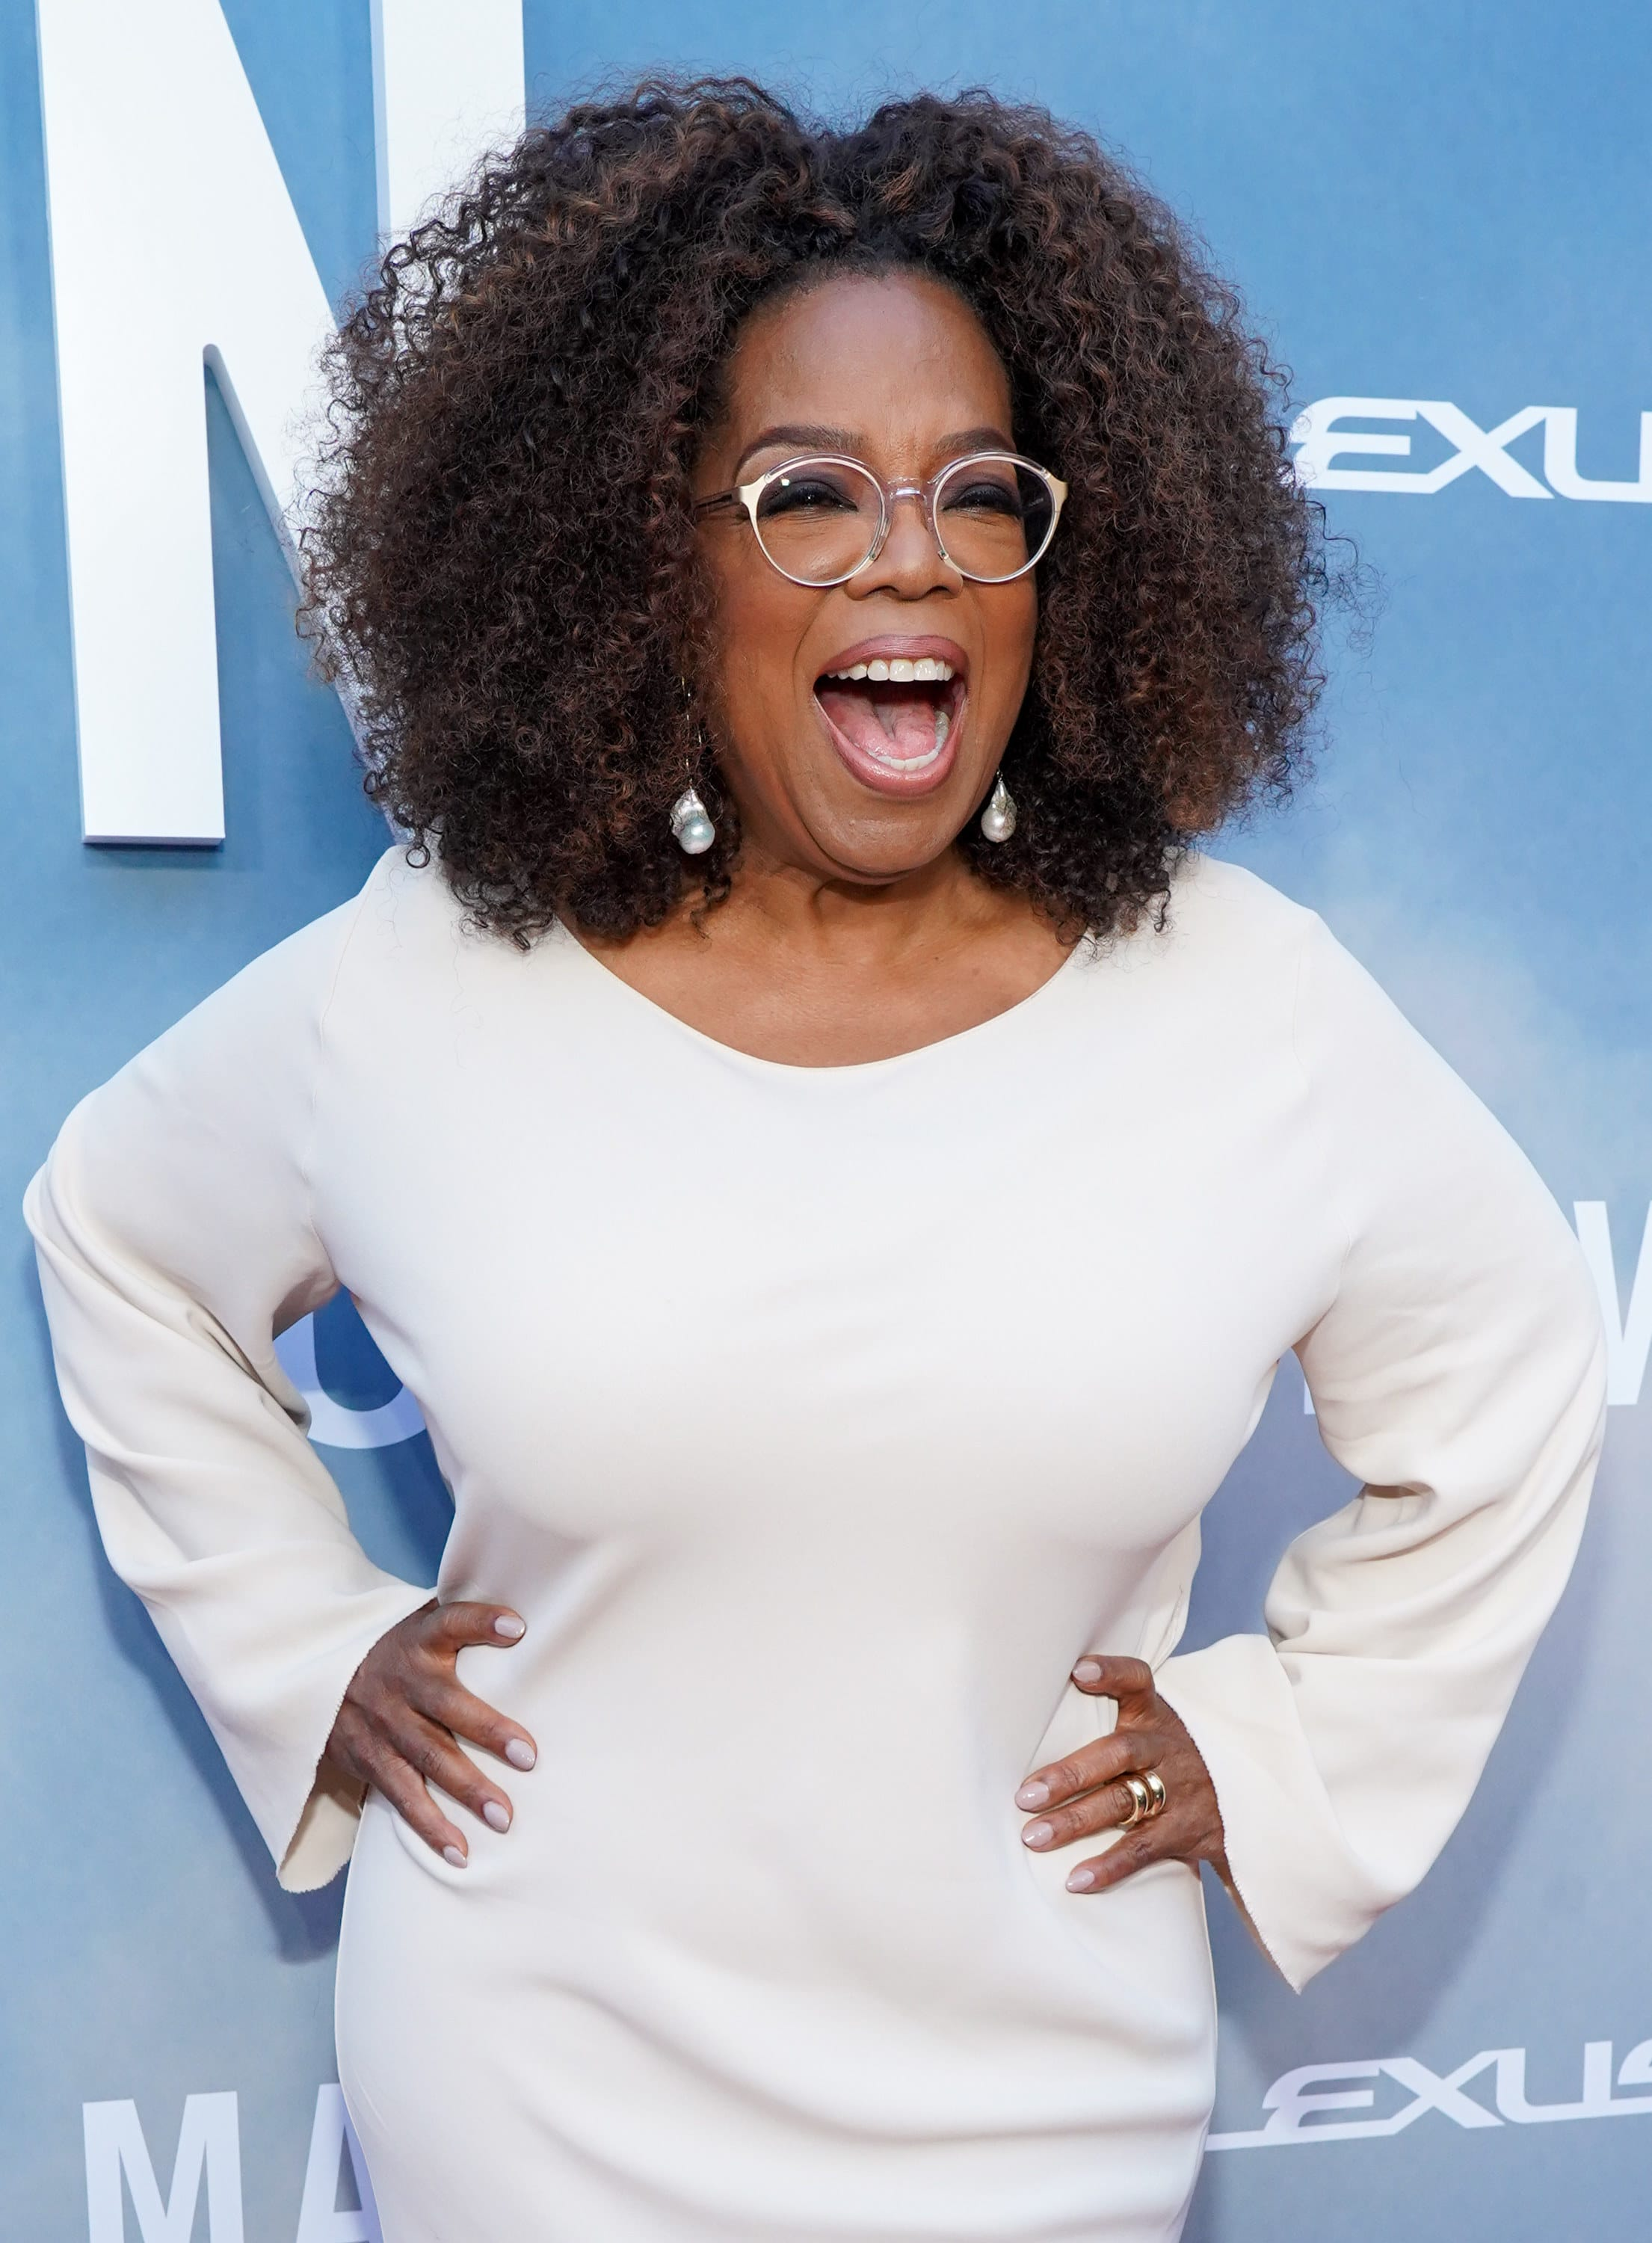 Oprah stands at a red carpet event with her hands on her hips